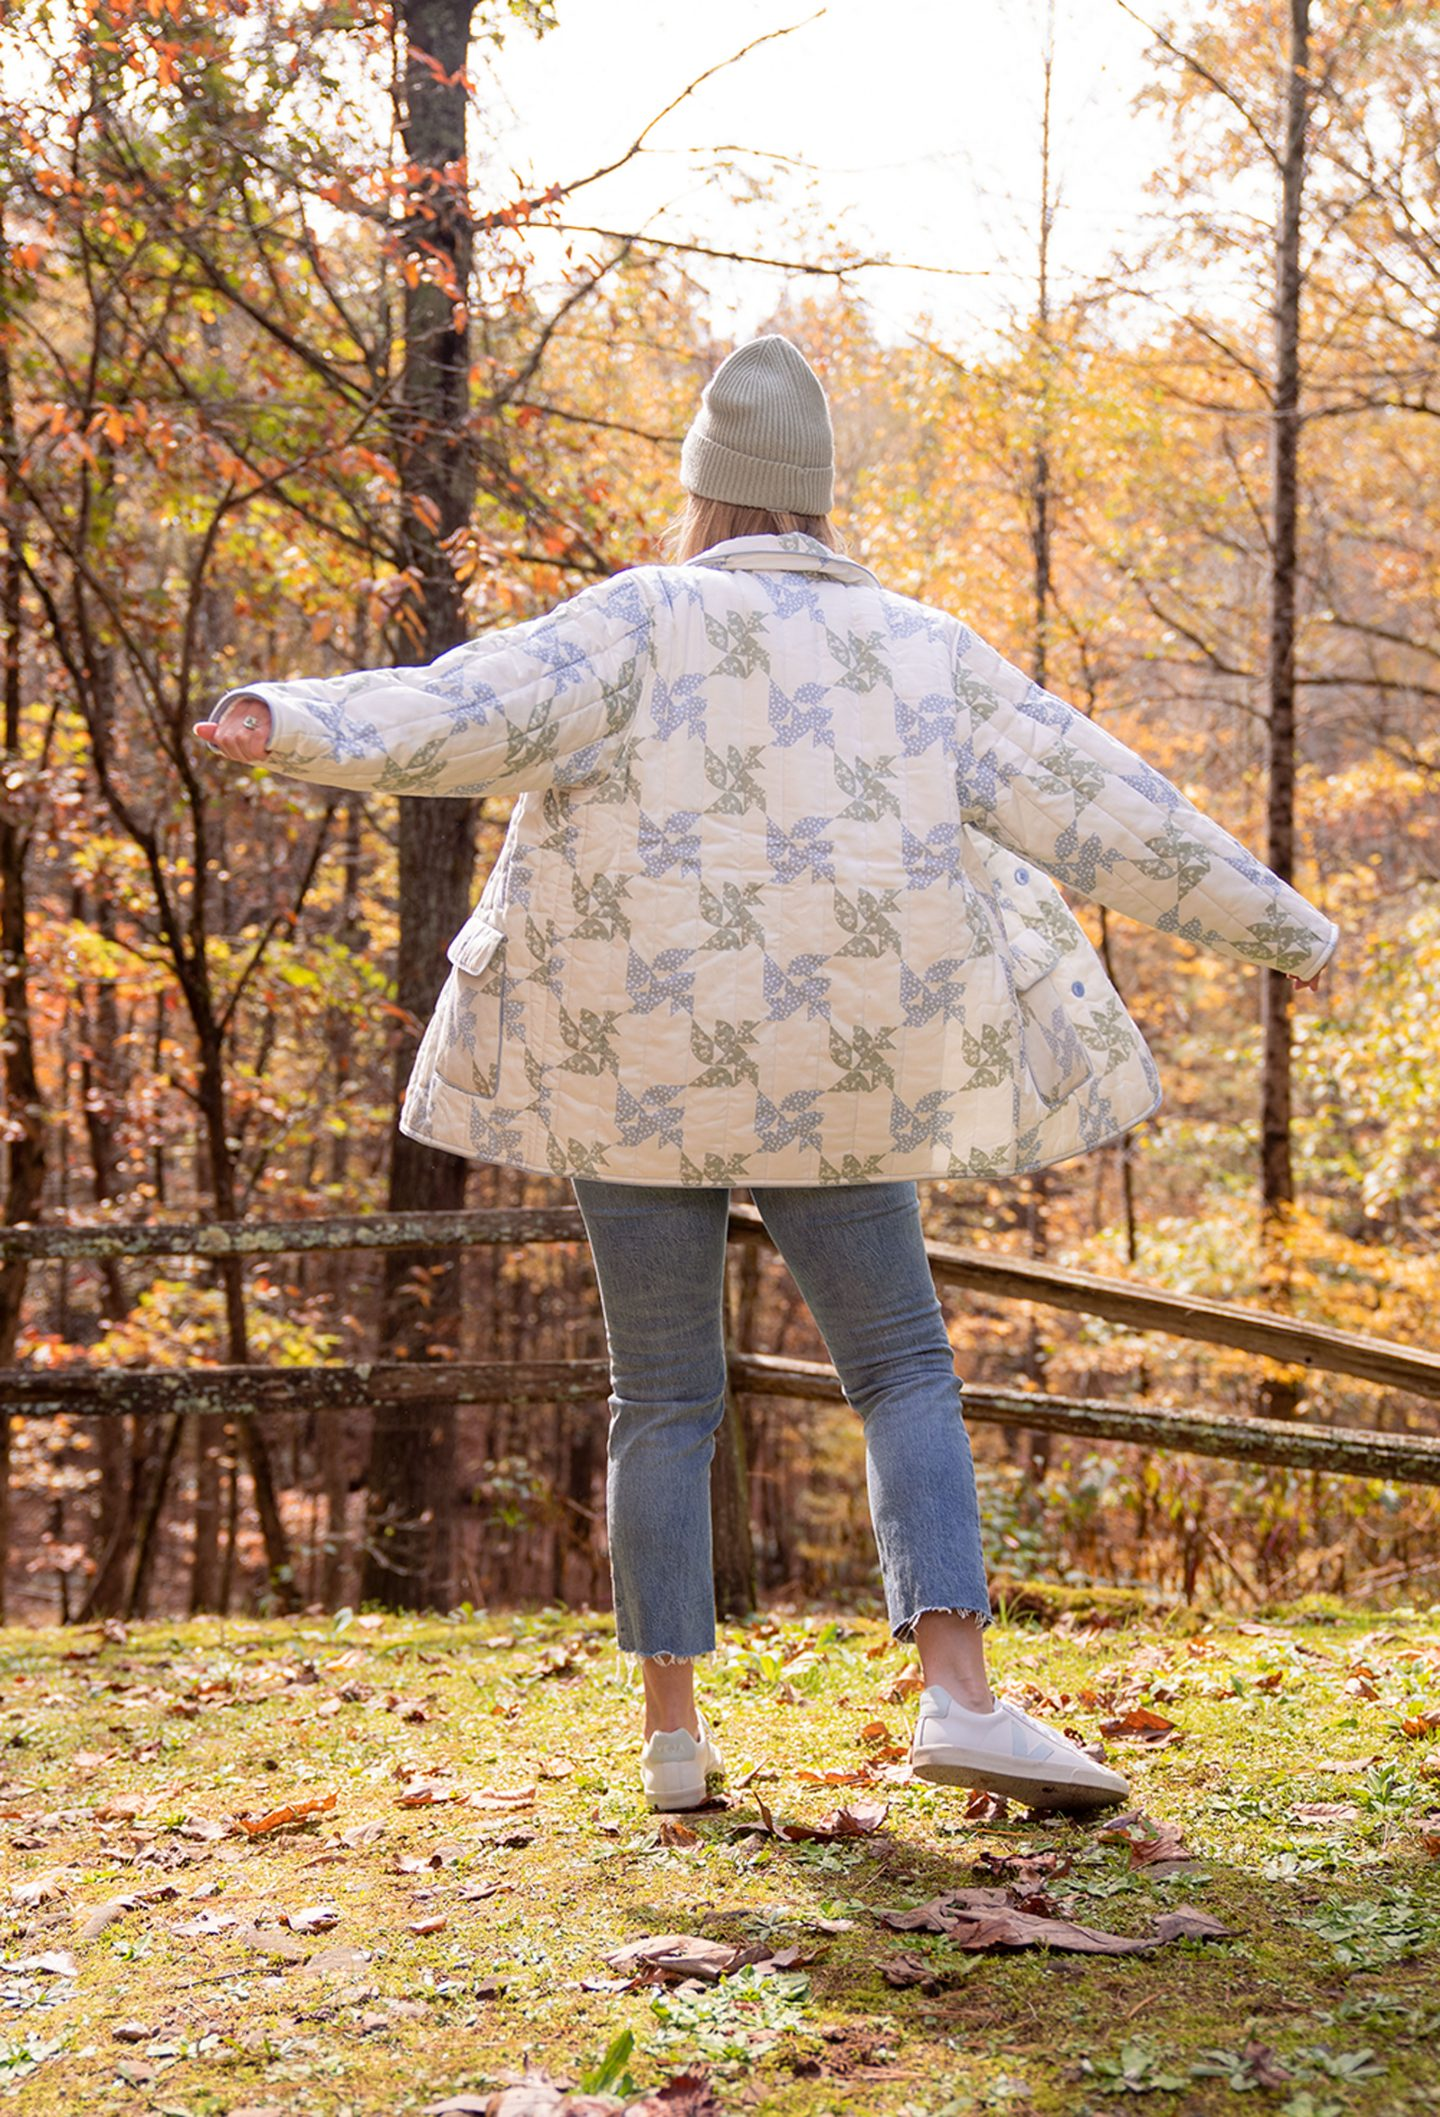 Ashley Brooke twirling in quilted jacket outside her cabin